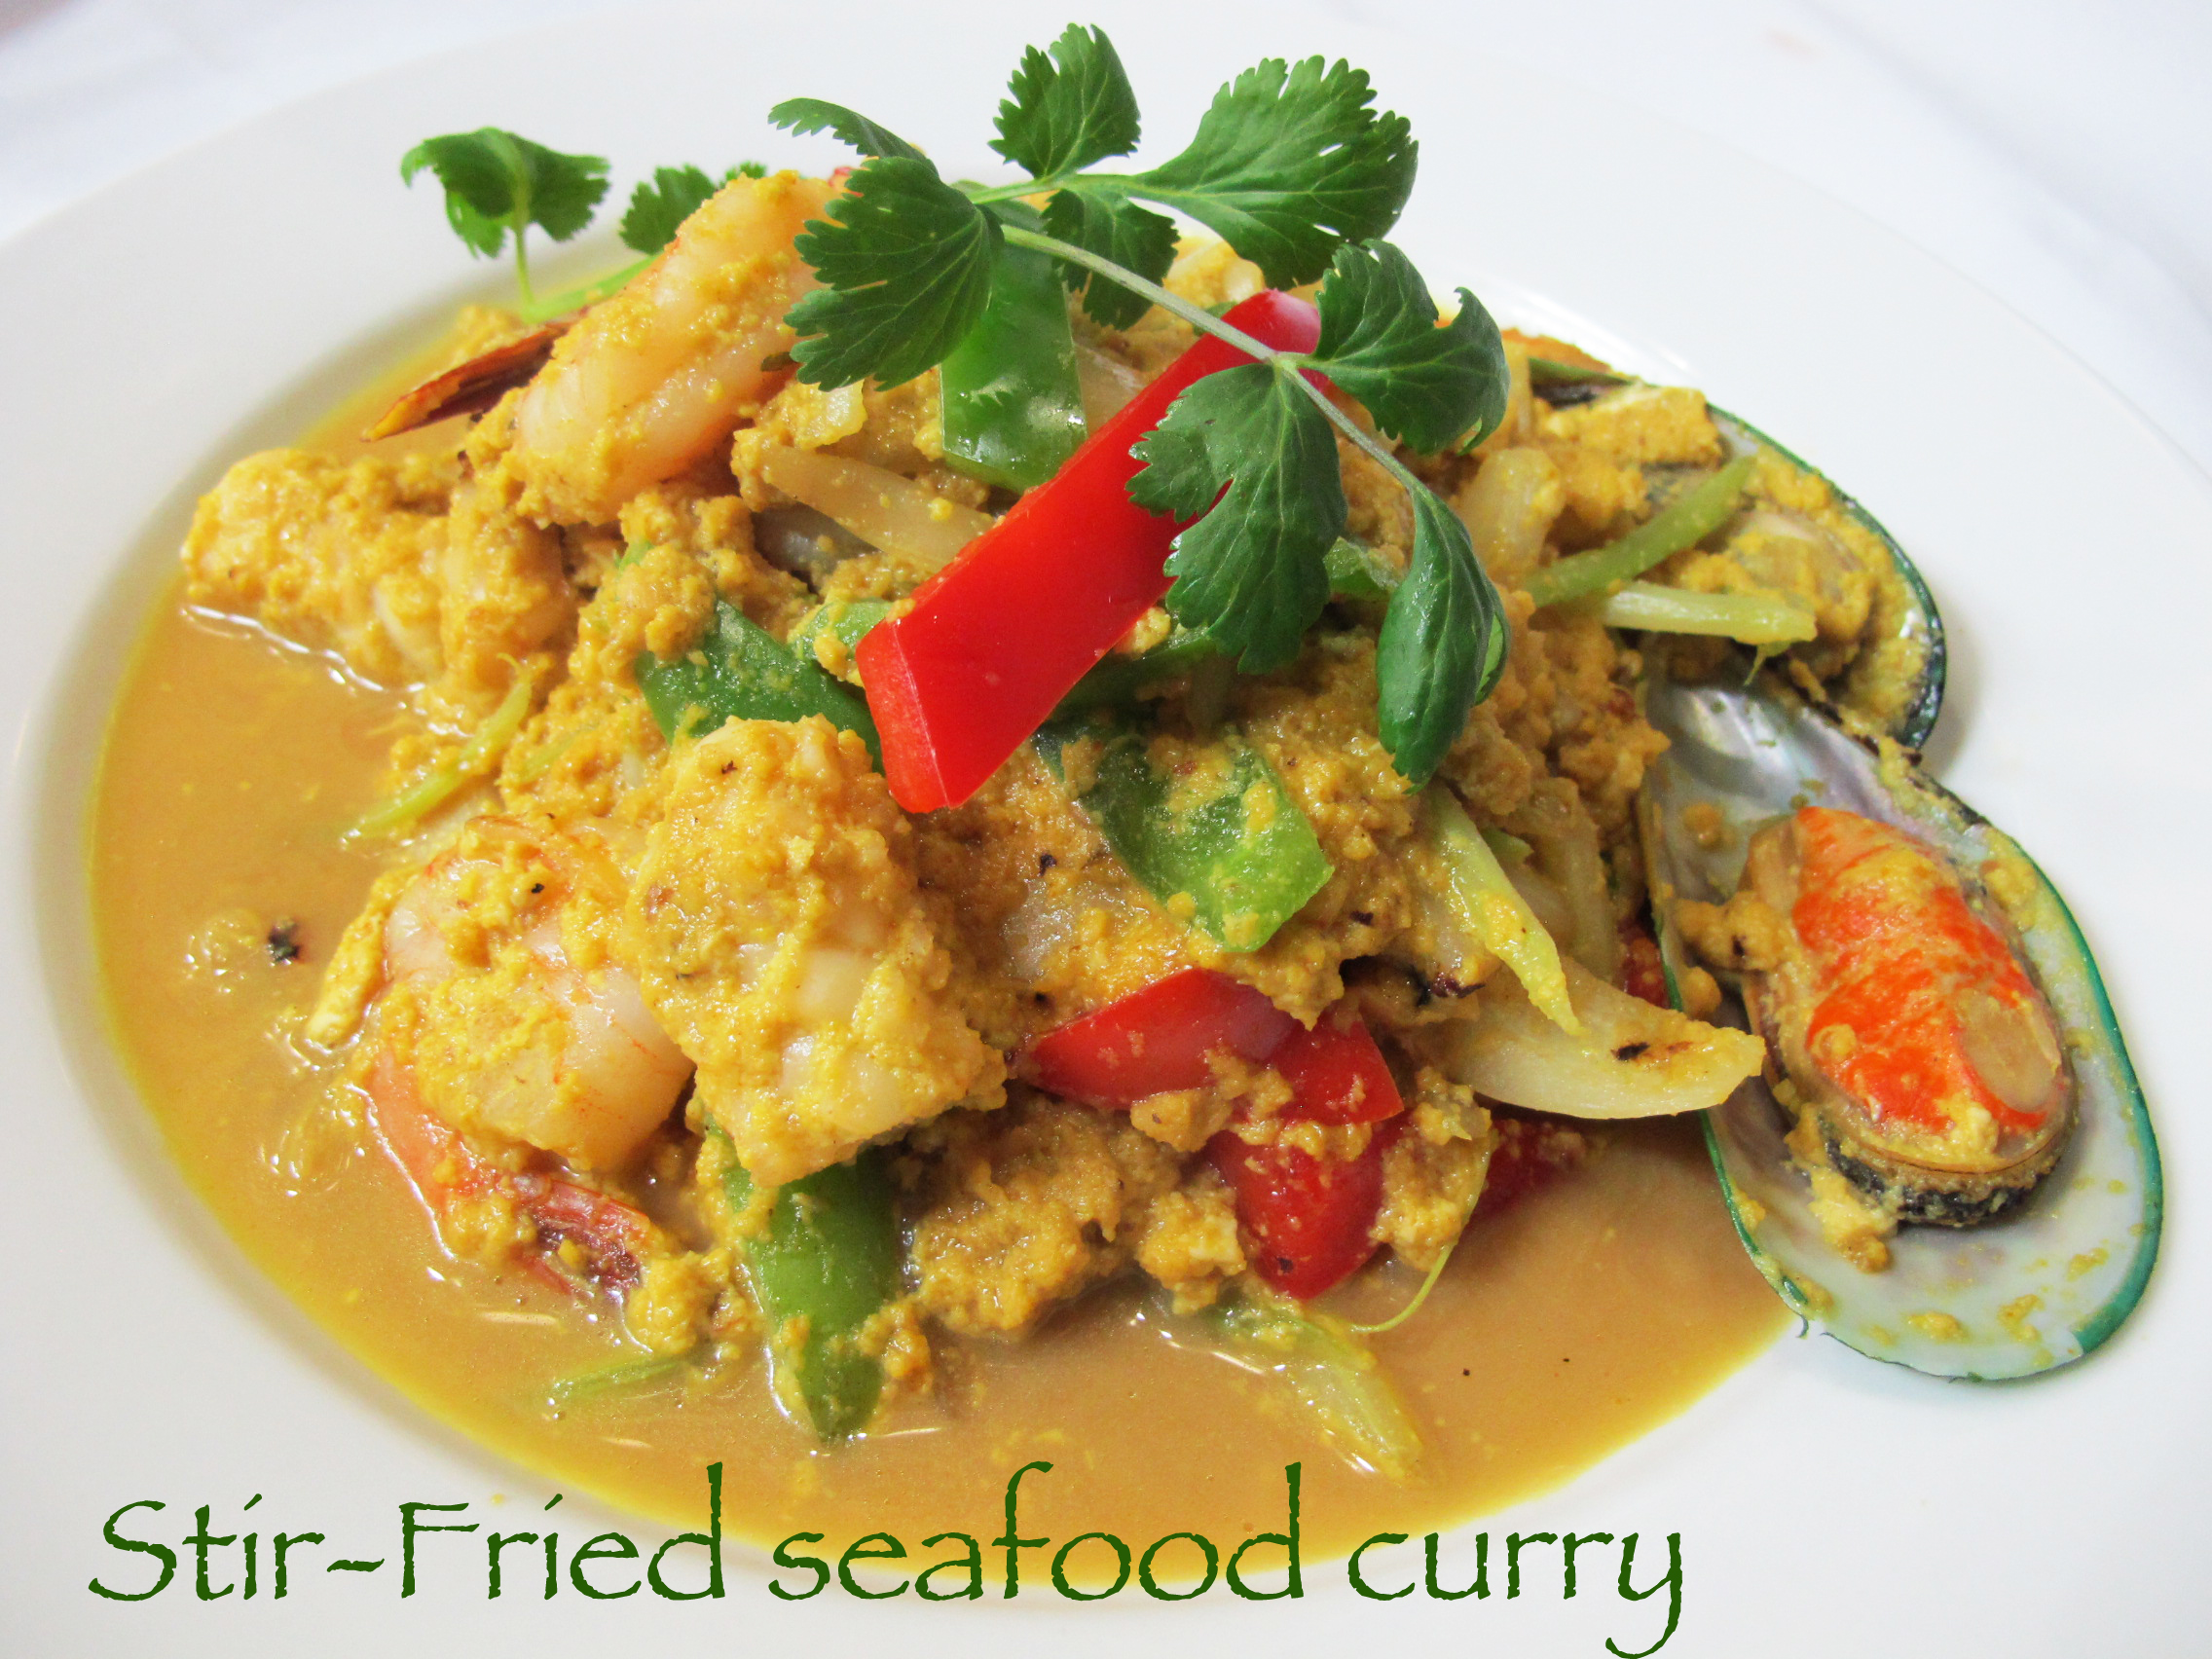 Stir Fried Seafood Curry 1.jpg